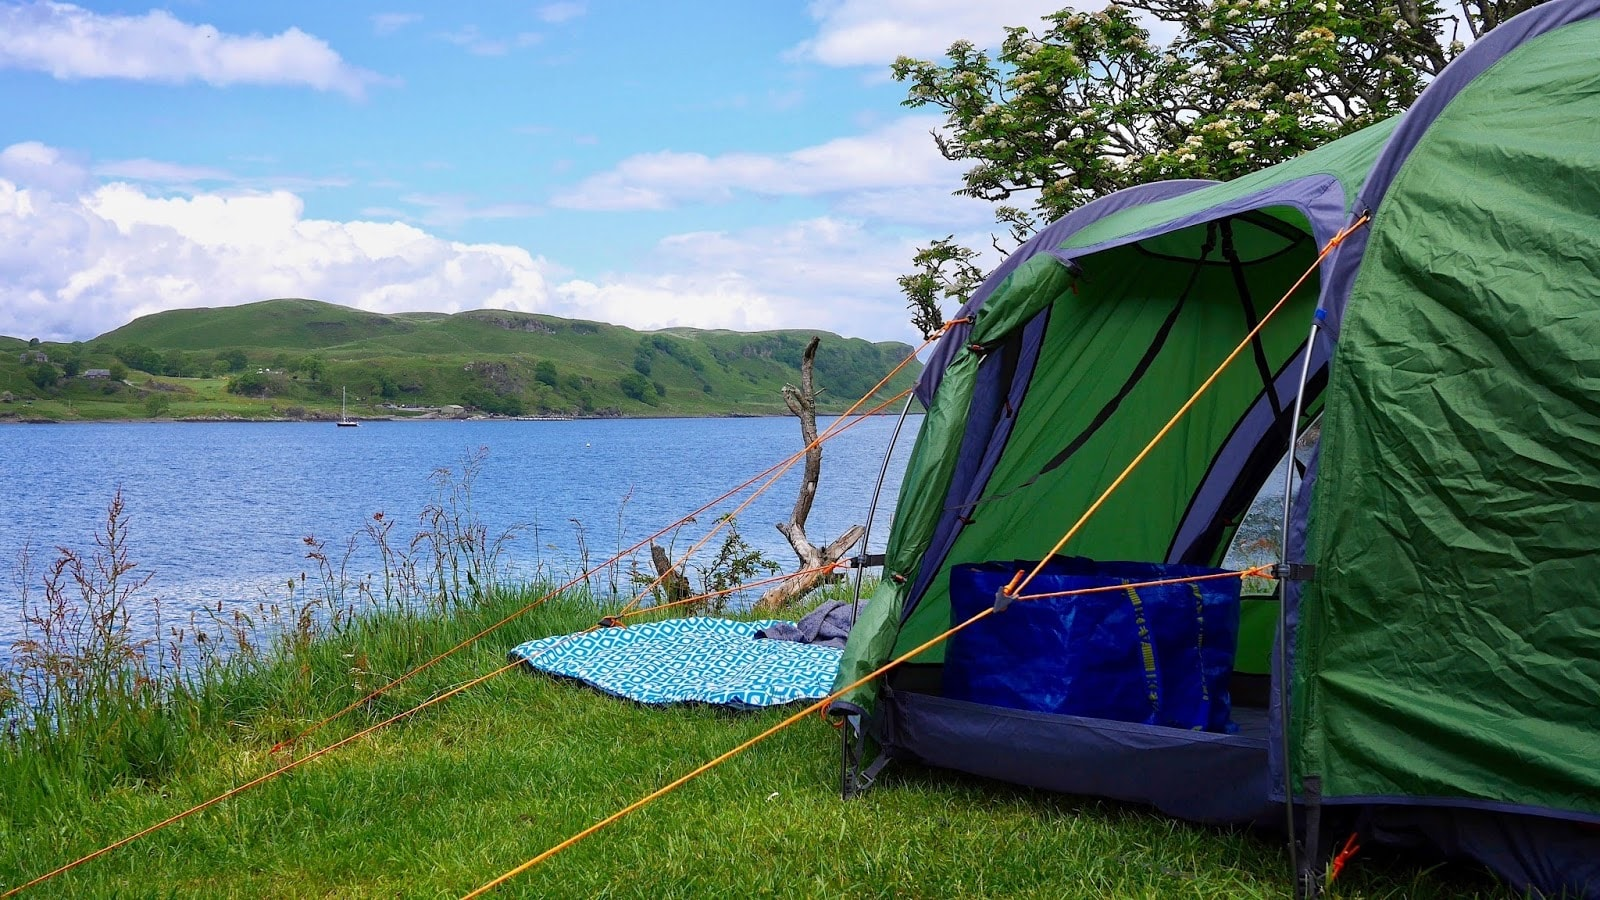 Camping in Oban beside the loch where stunning views and incredible scenery awaits, www.CalMCTravels.com, The best campsites in Scotland